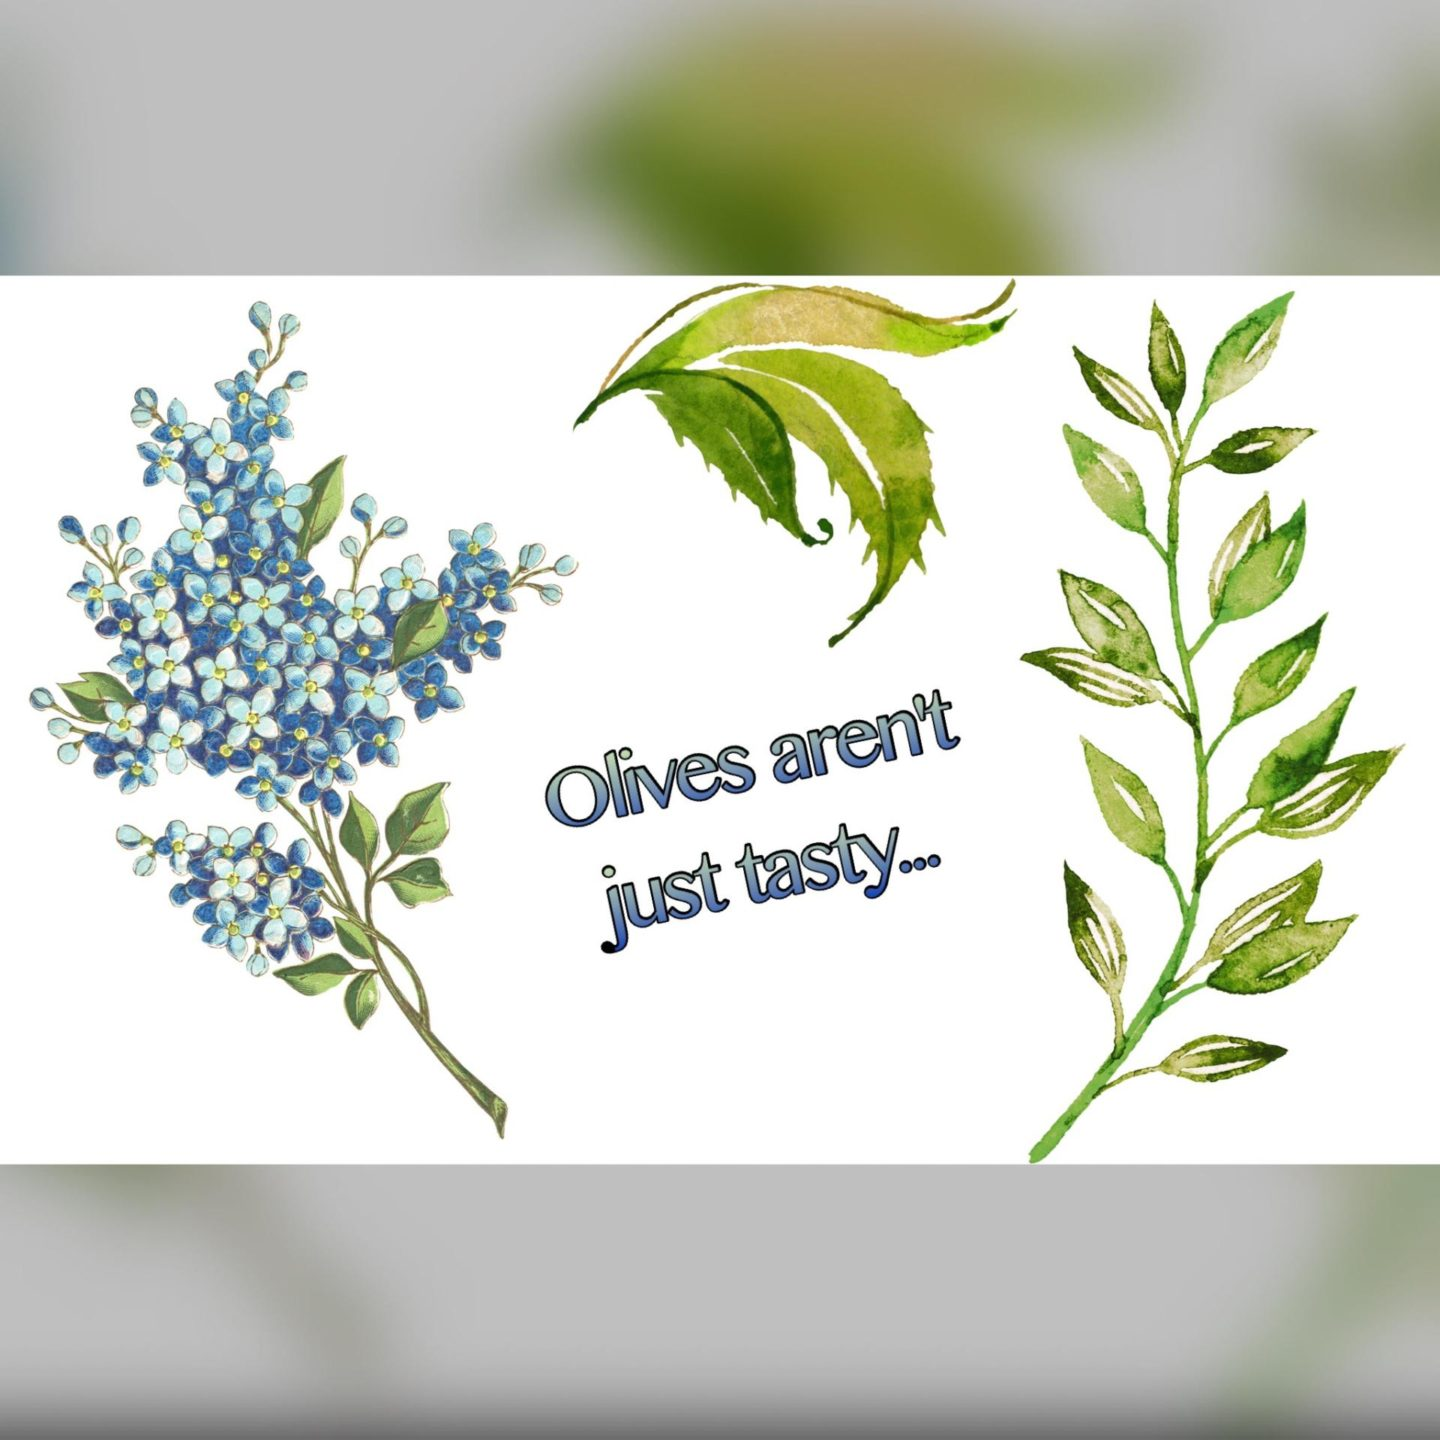 Image text - olives aren't just tasty